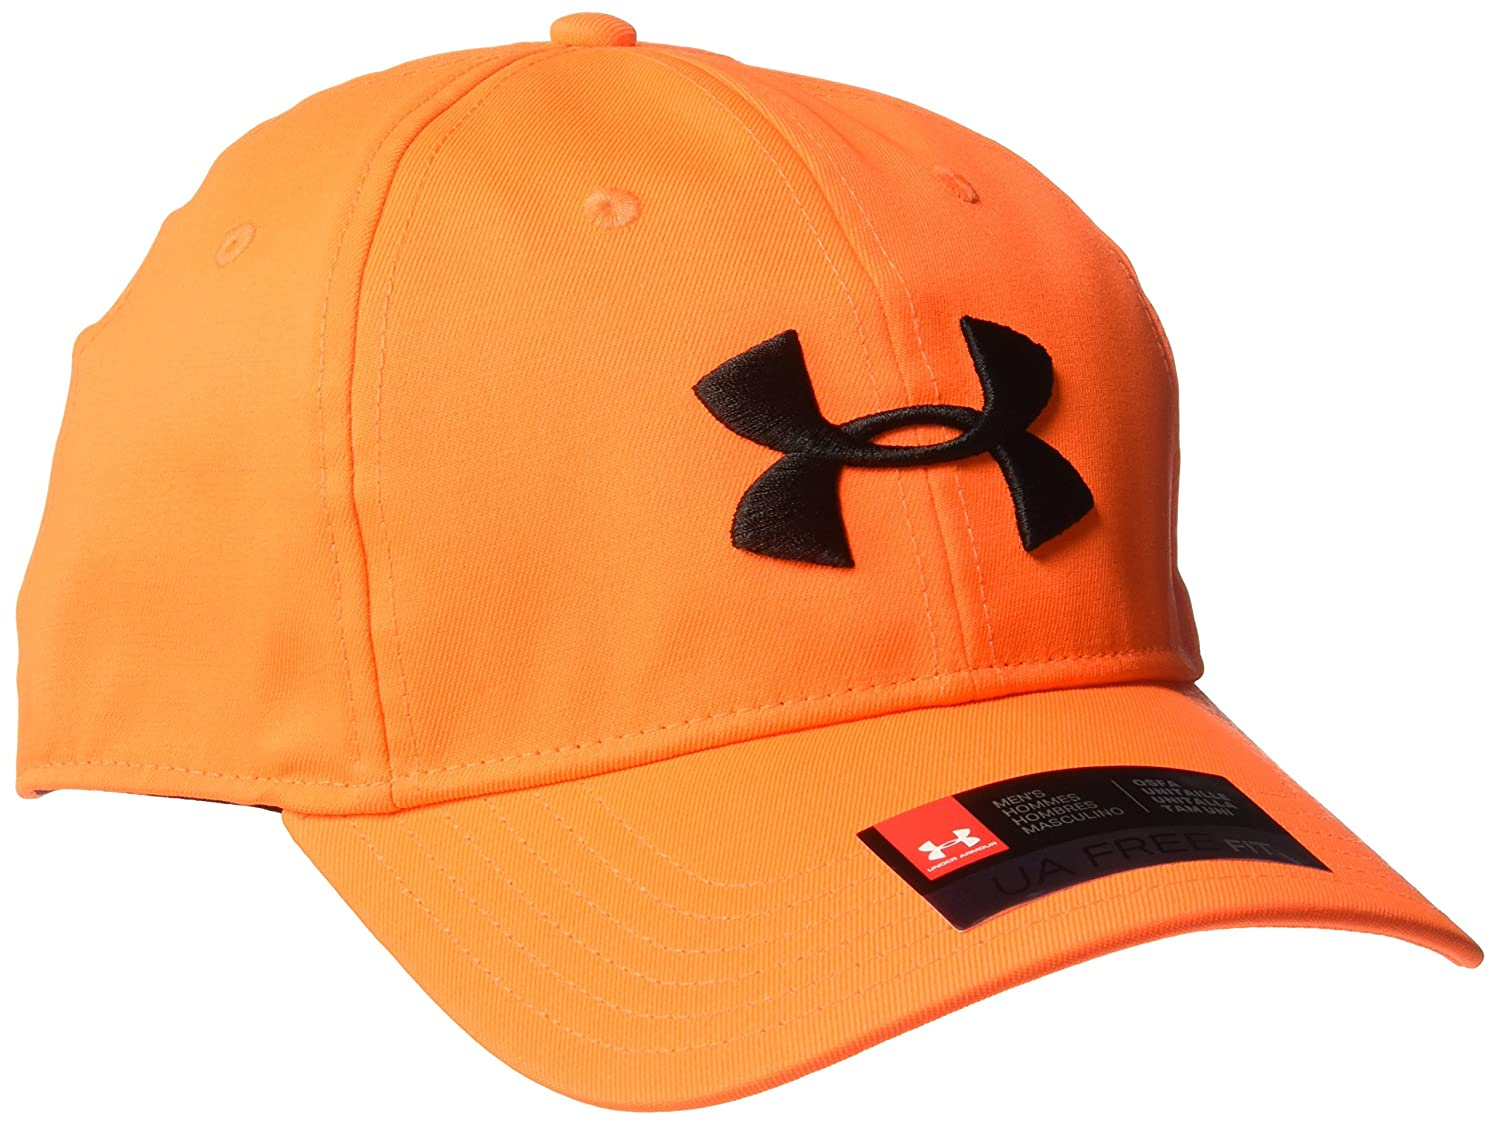 ae03b499757 Amazon.com  Under Armour Men s Camo 2.0 Cap